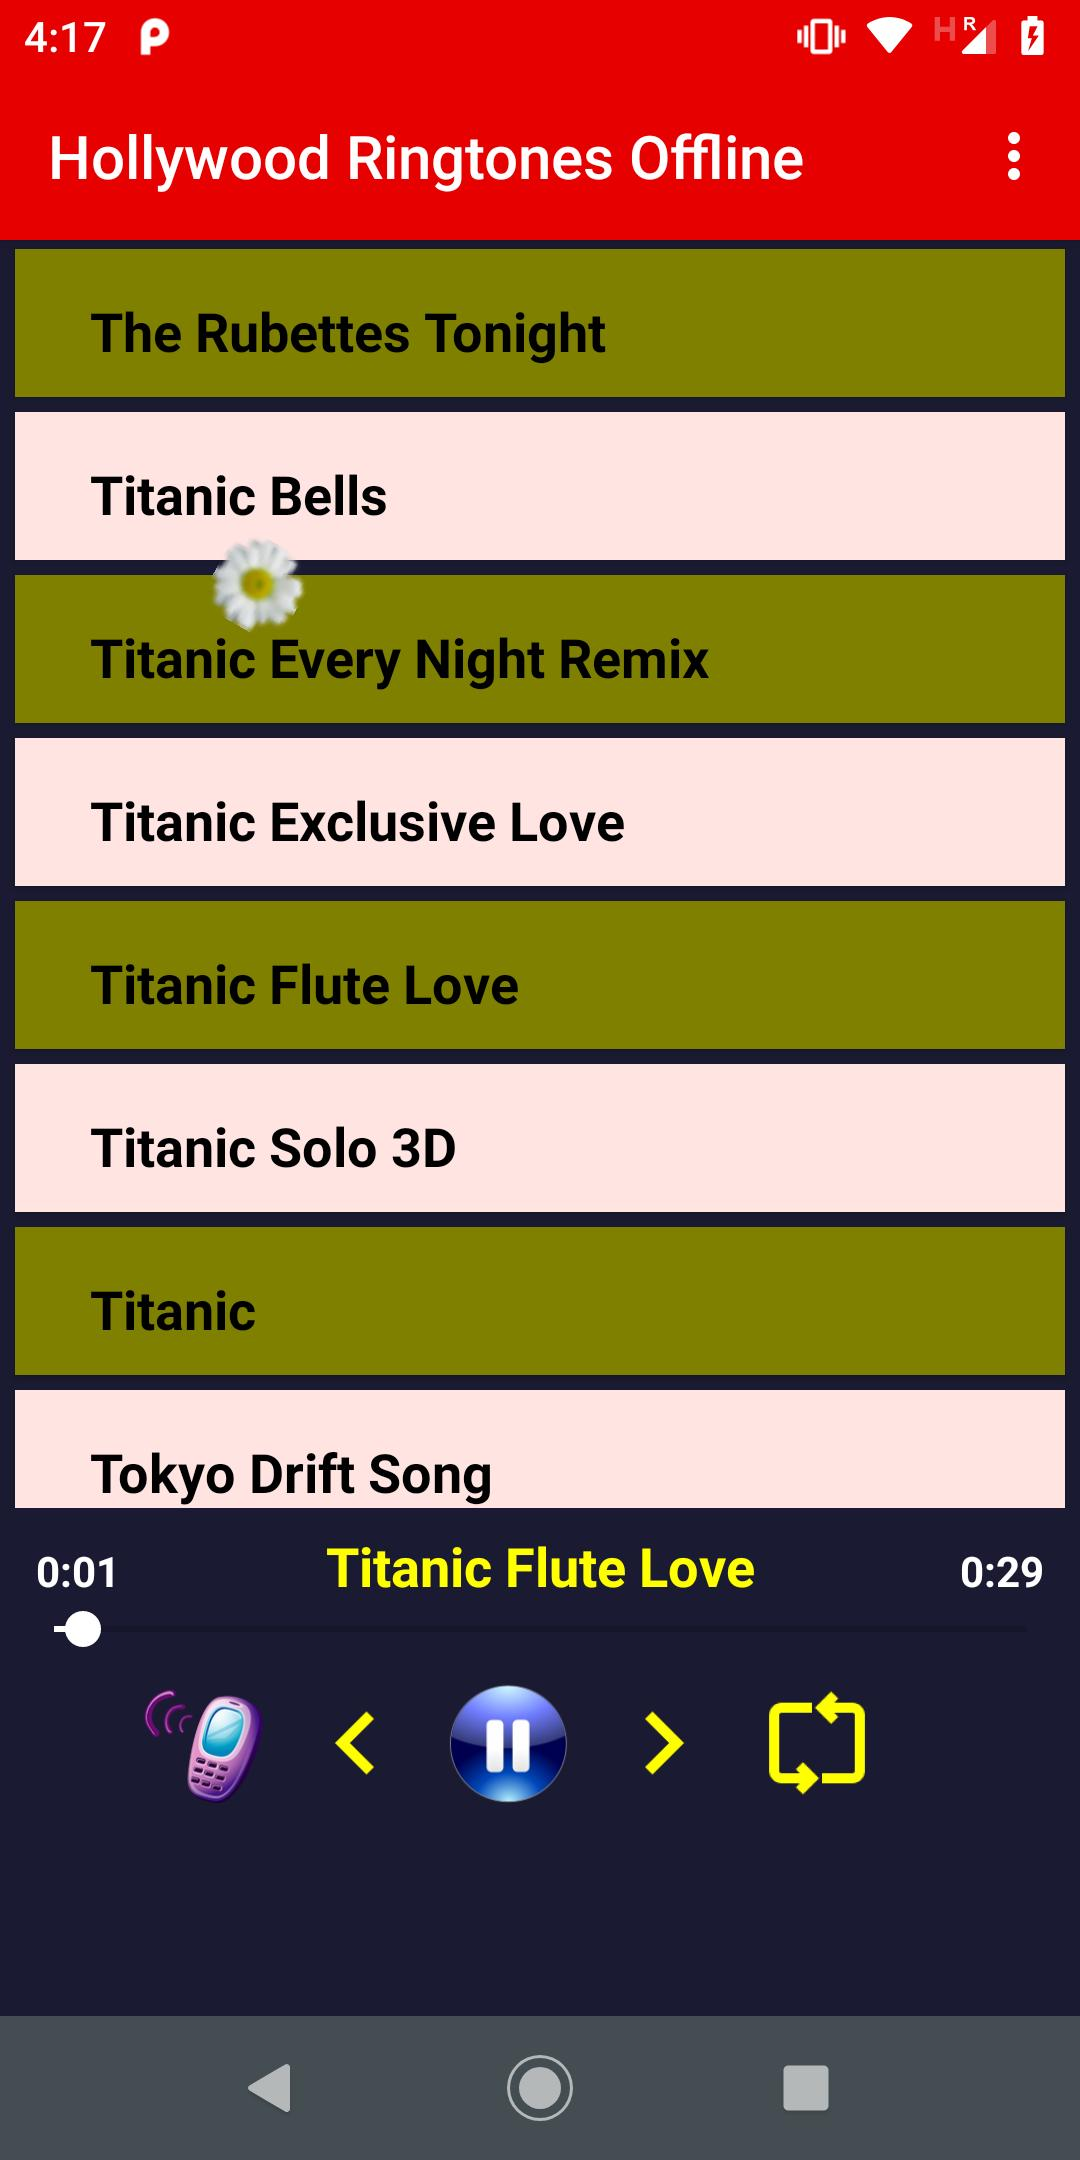 Hollywood Ringtones Offline for Android - APK Download